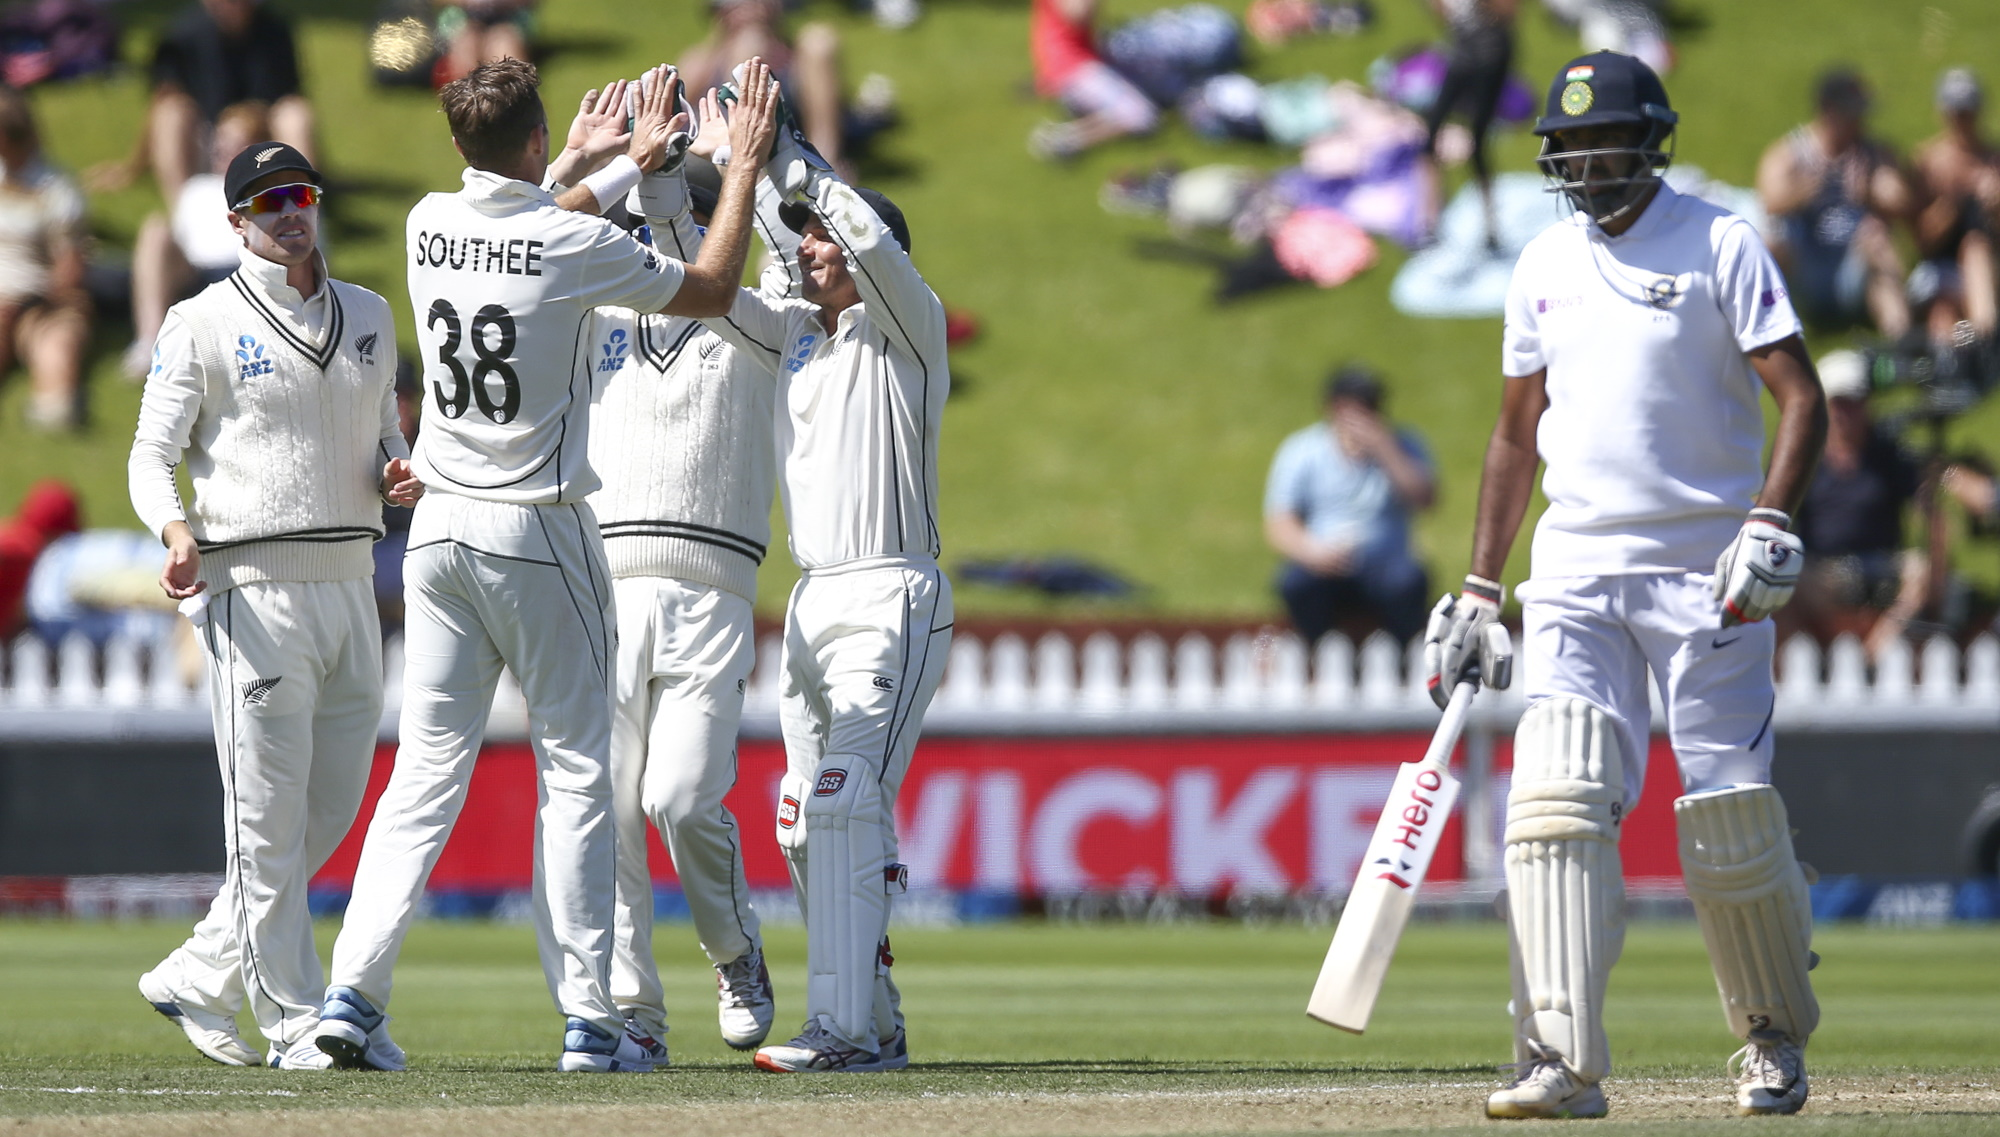 How to watch New Zealand vs India: live stream 2nd Test cricket from anywhere | TechRadar